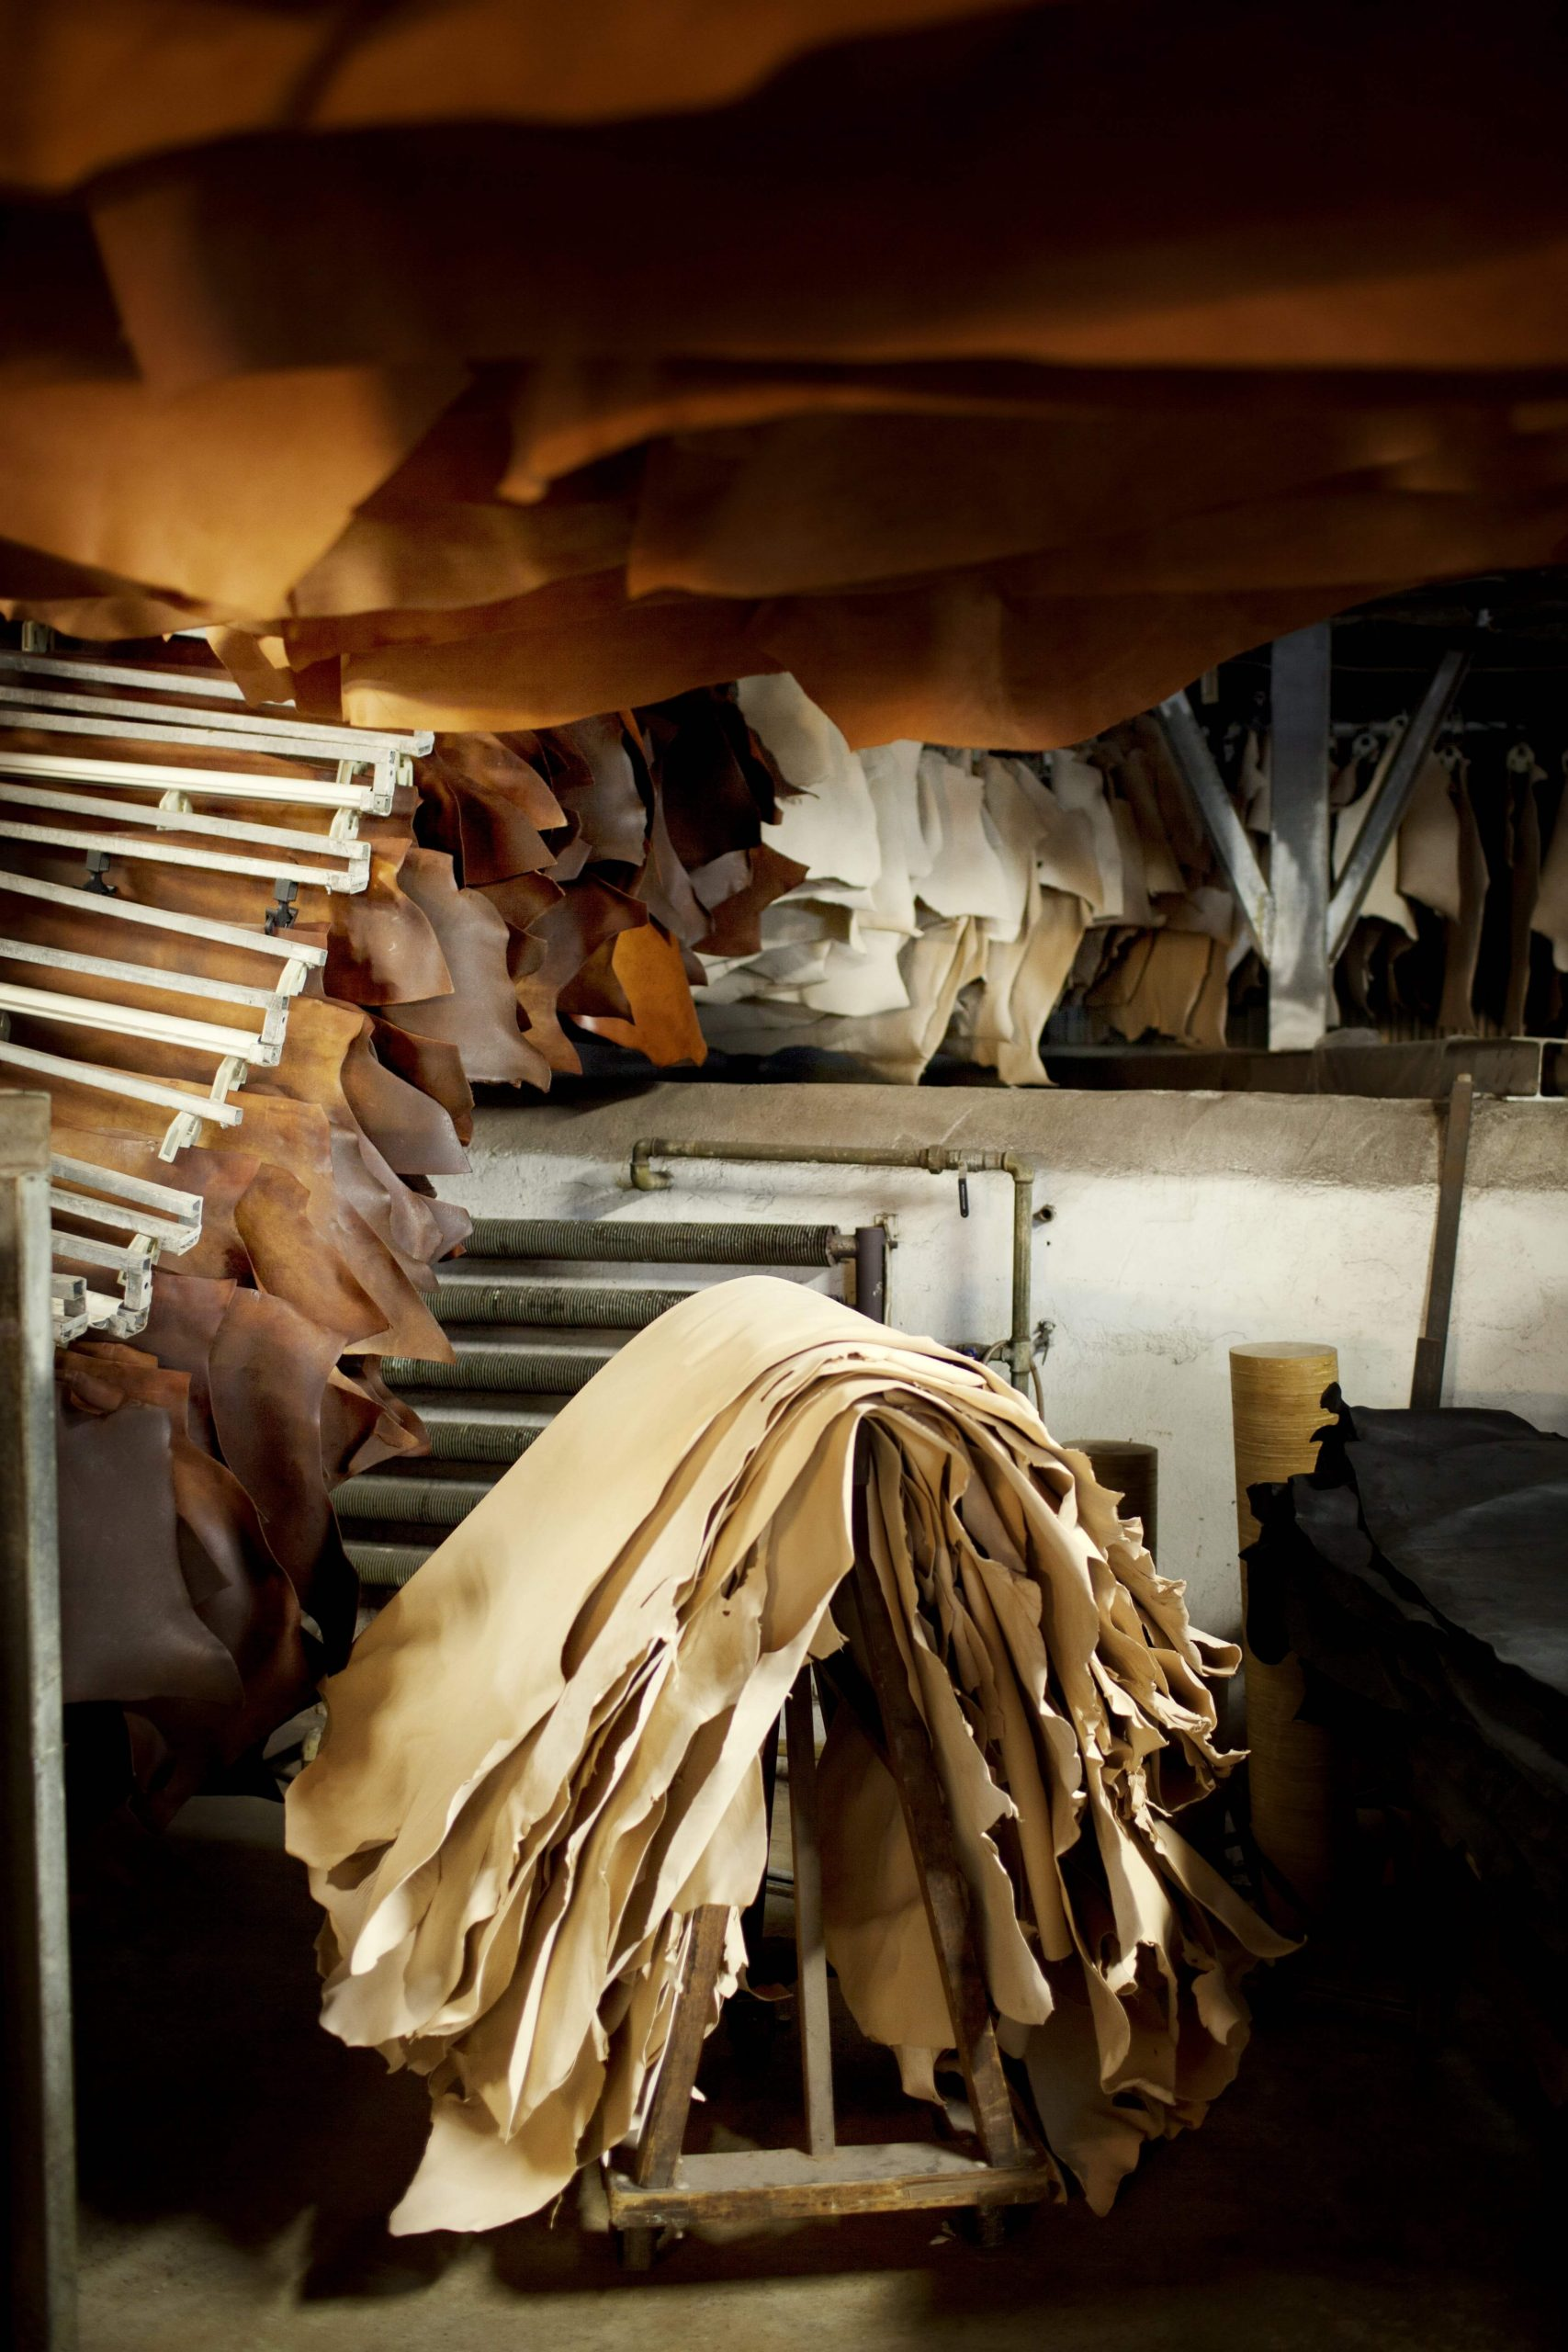 The eco-friendly leather is a natural material managed using processes and chemicals that are safer for the environment.